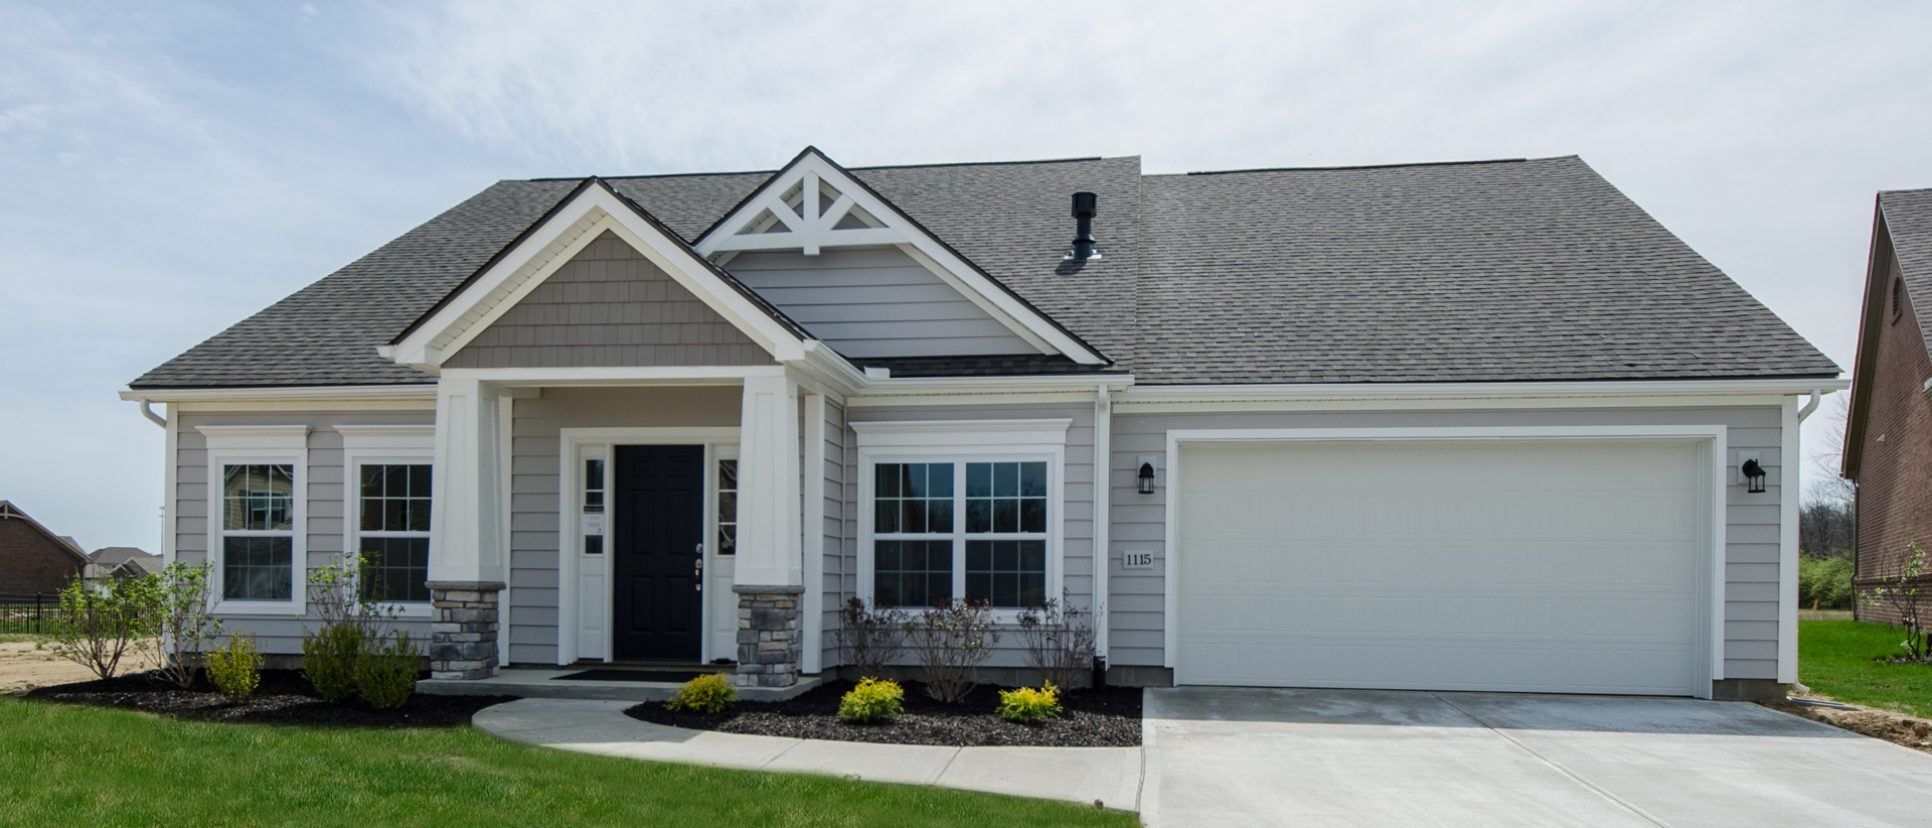 The Charlotte. A foundation series home by Design Homes & Development.